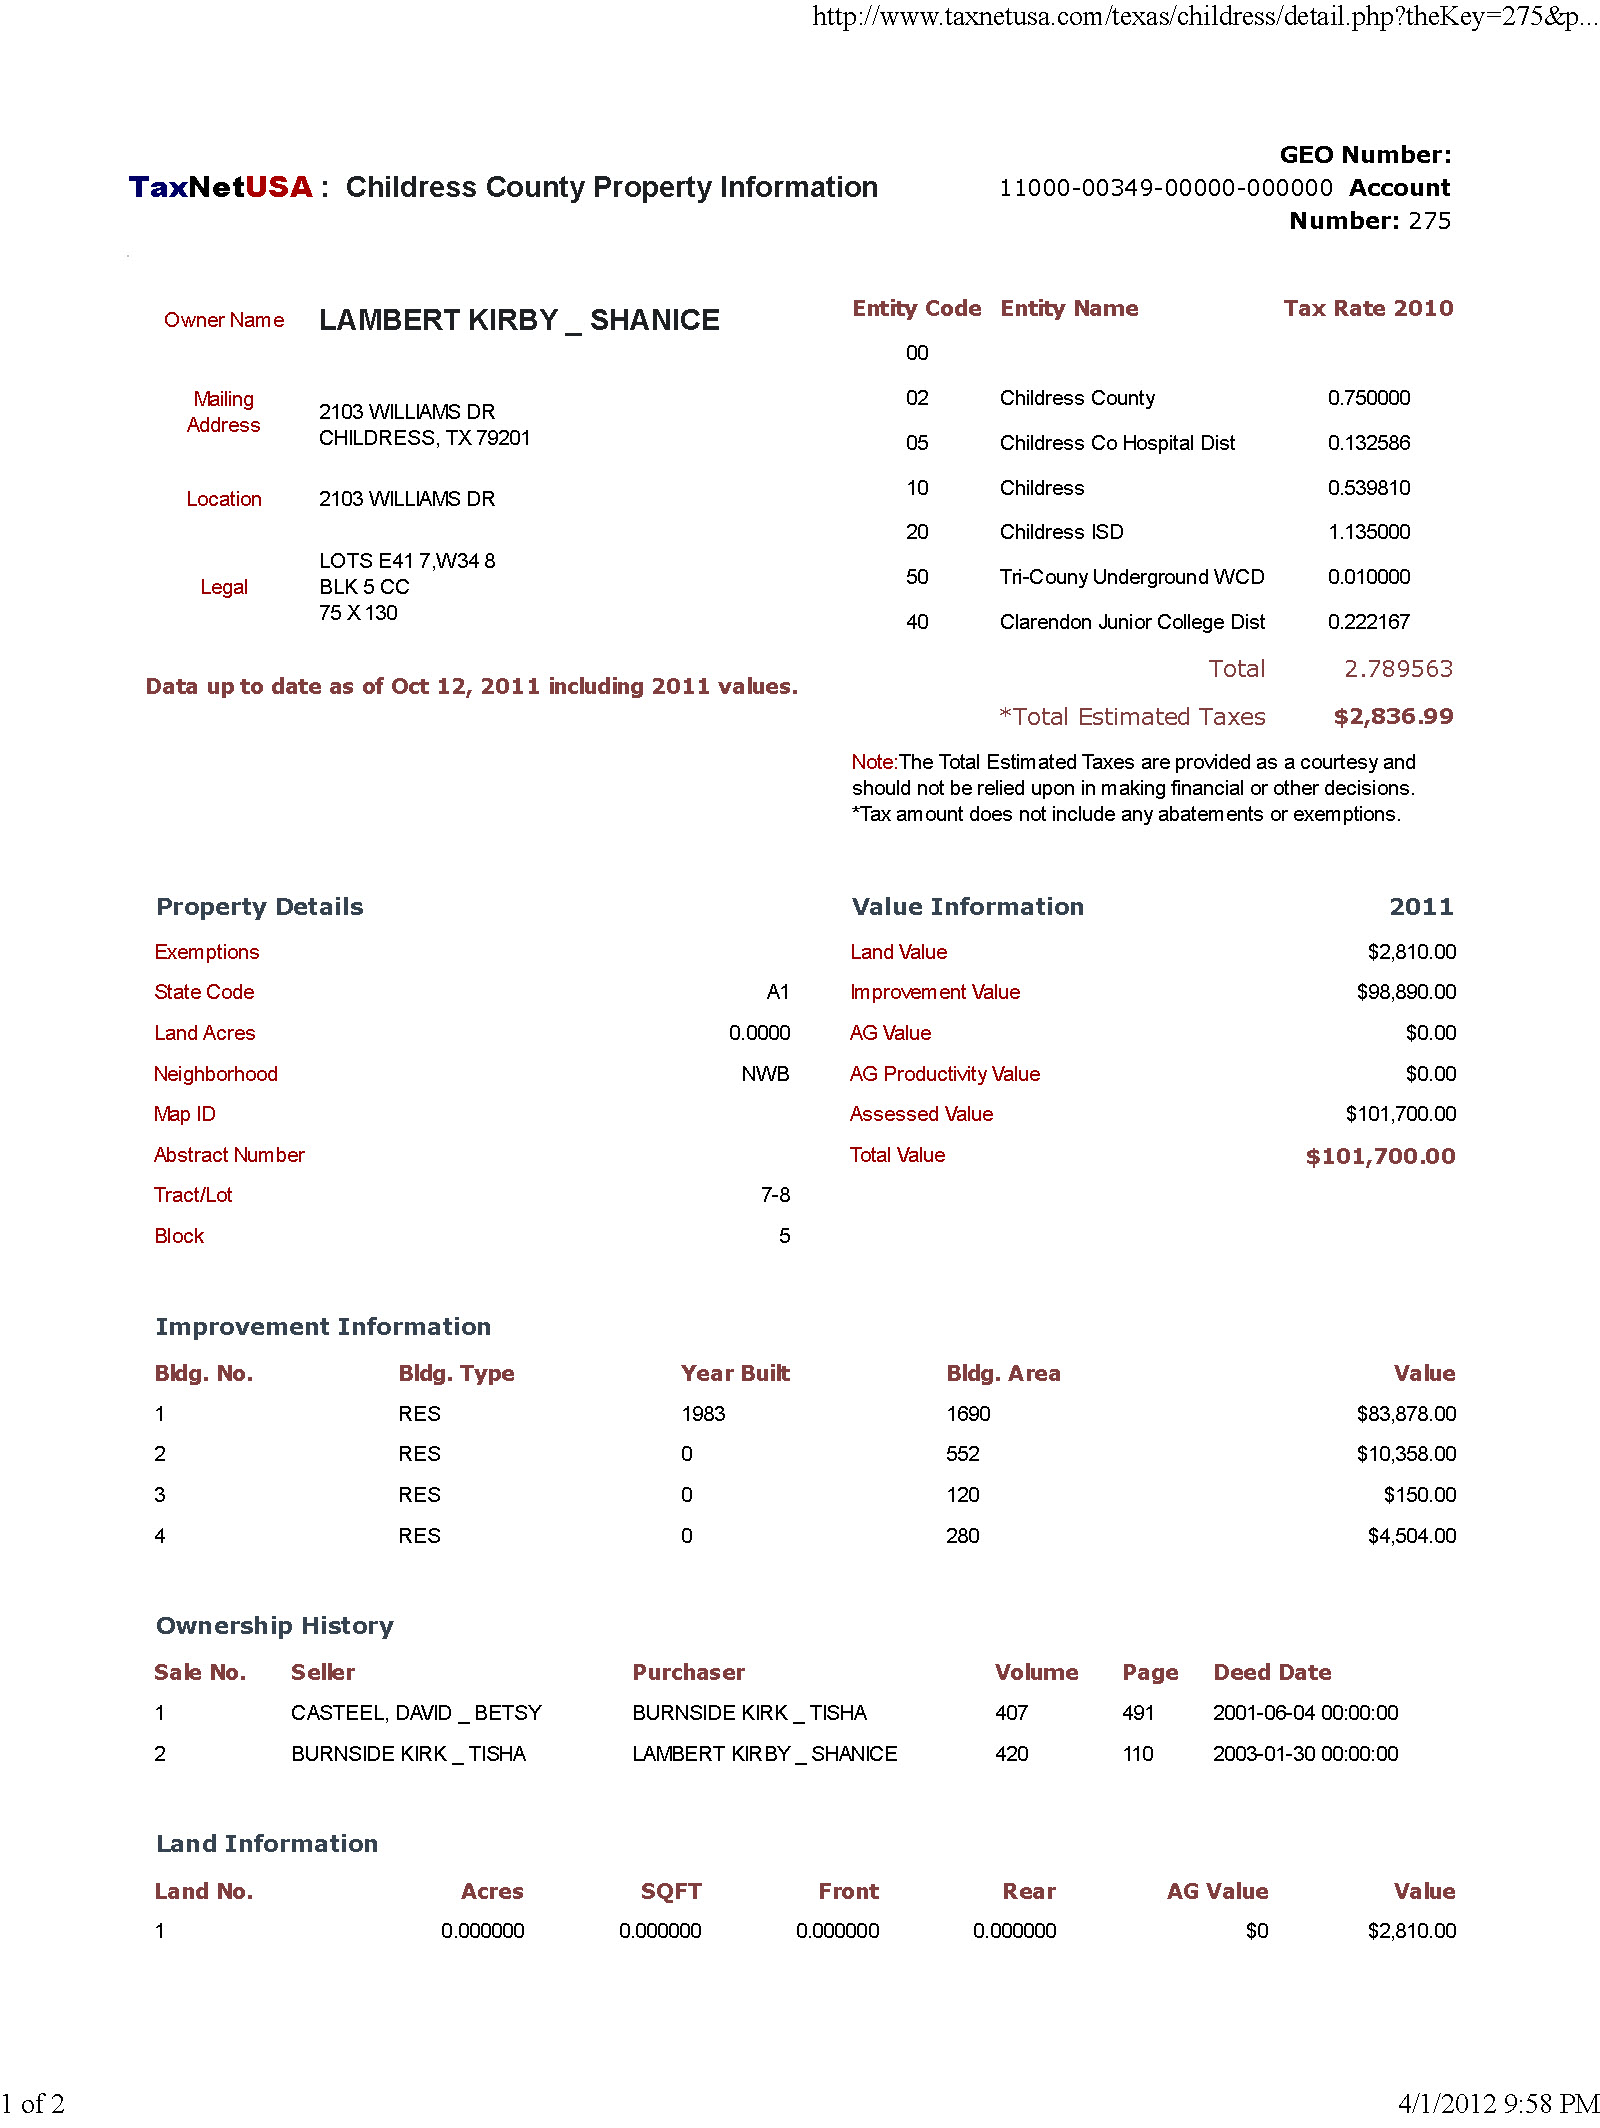 Copy of lambert shanice property tax info1.jpg